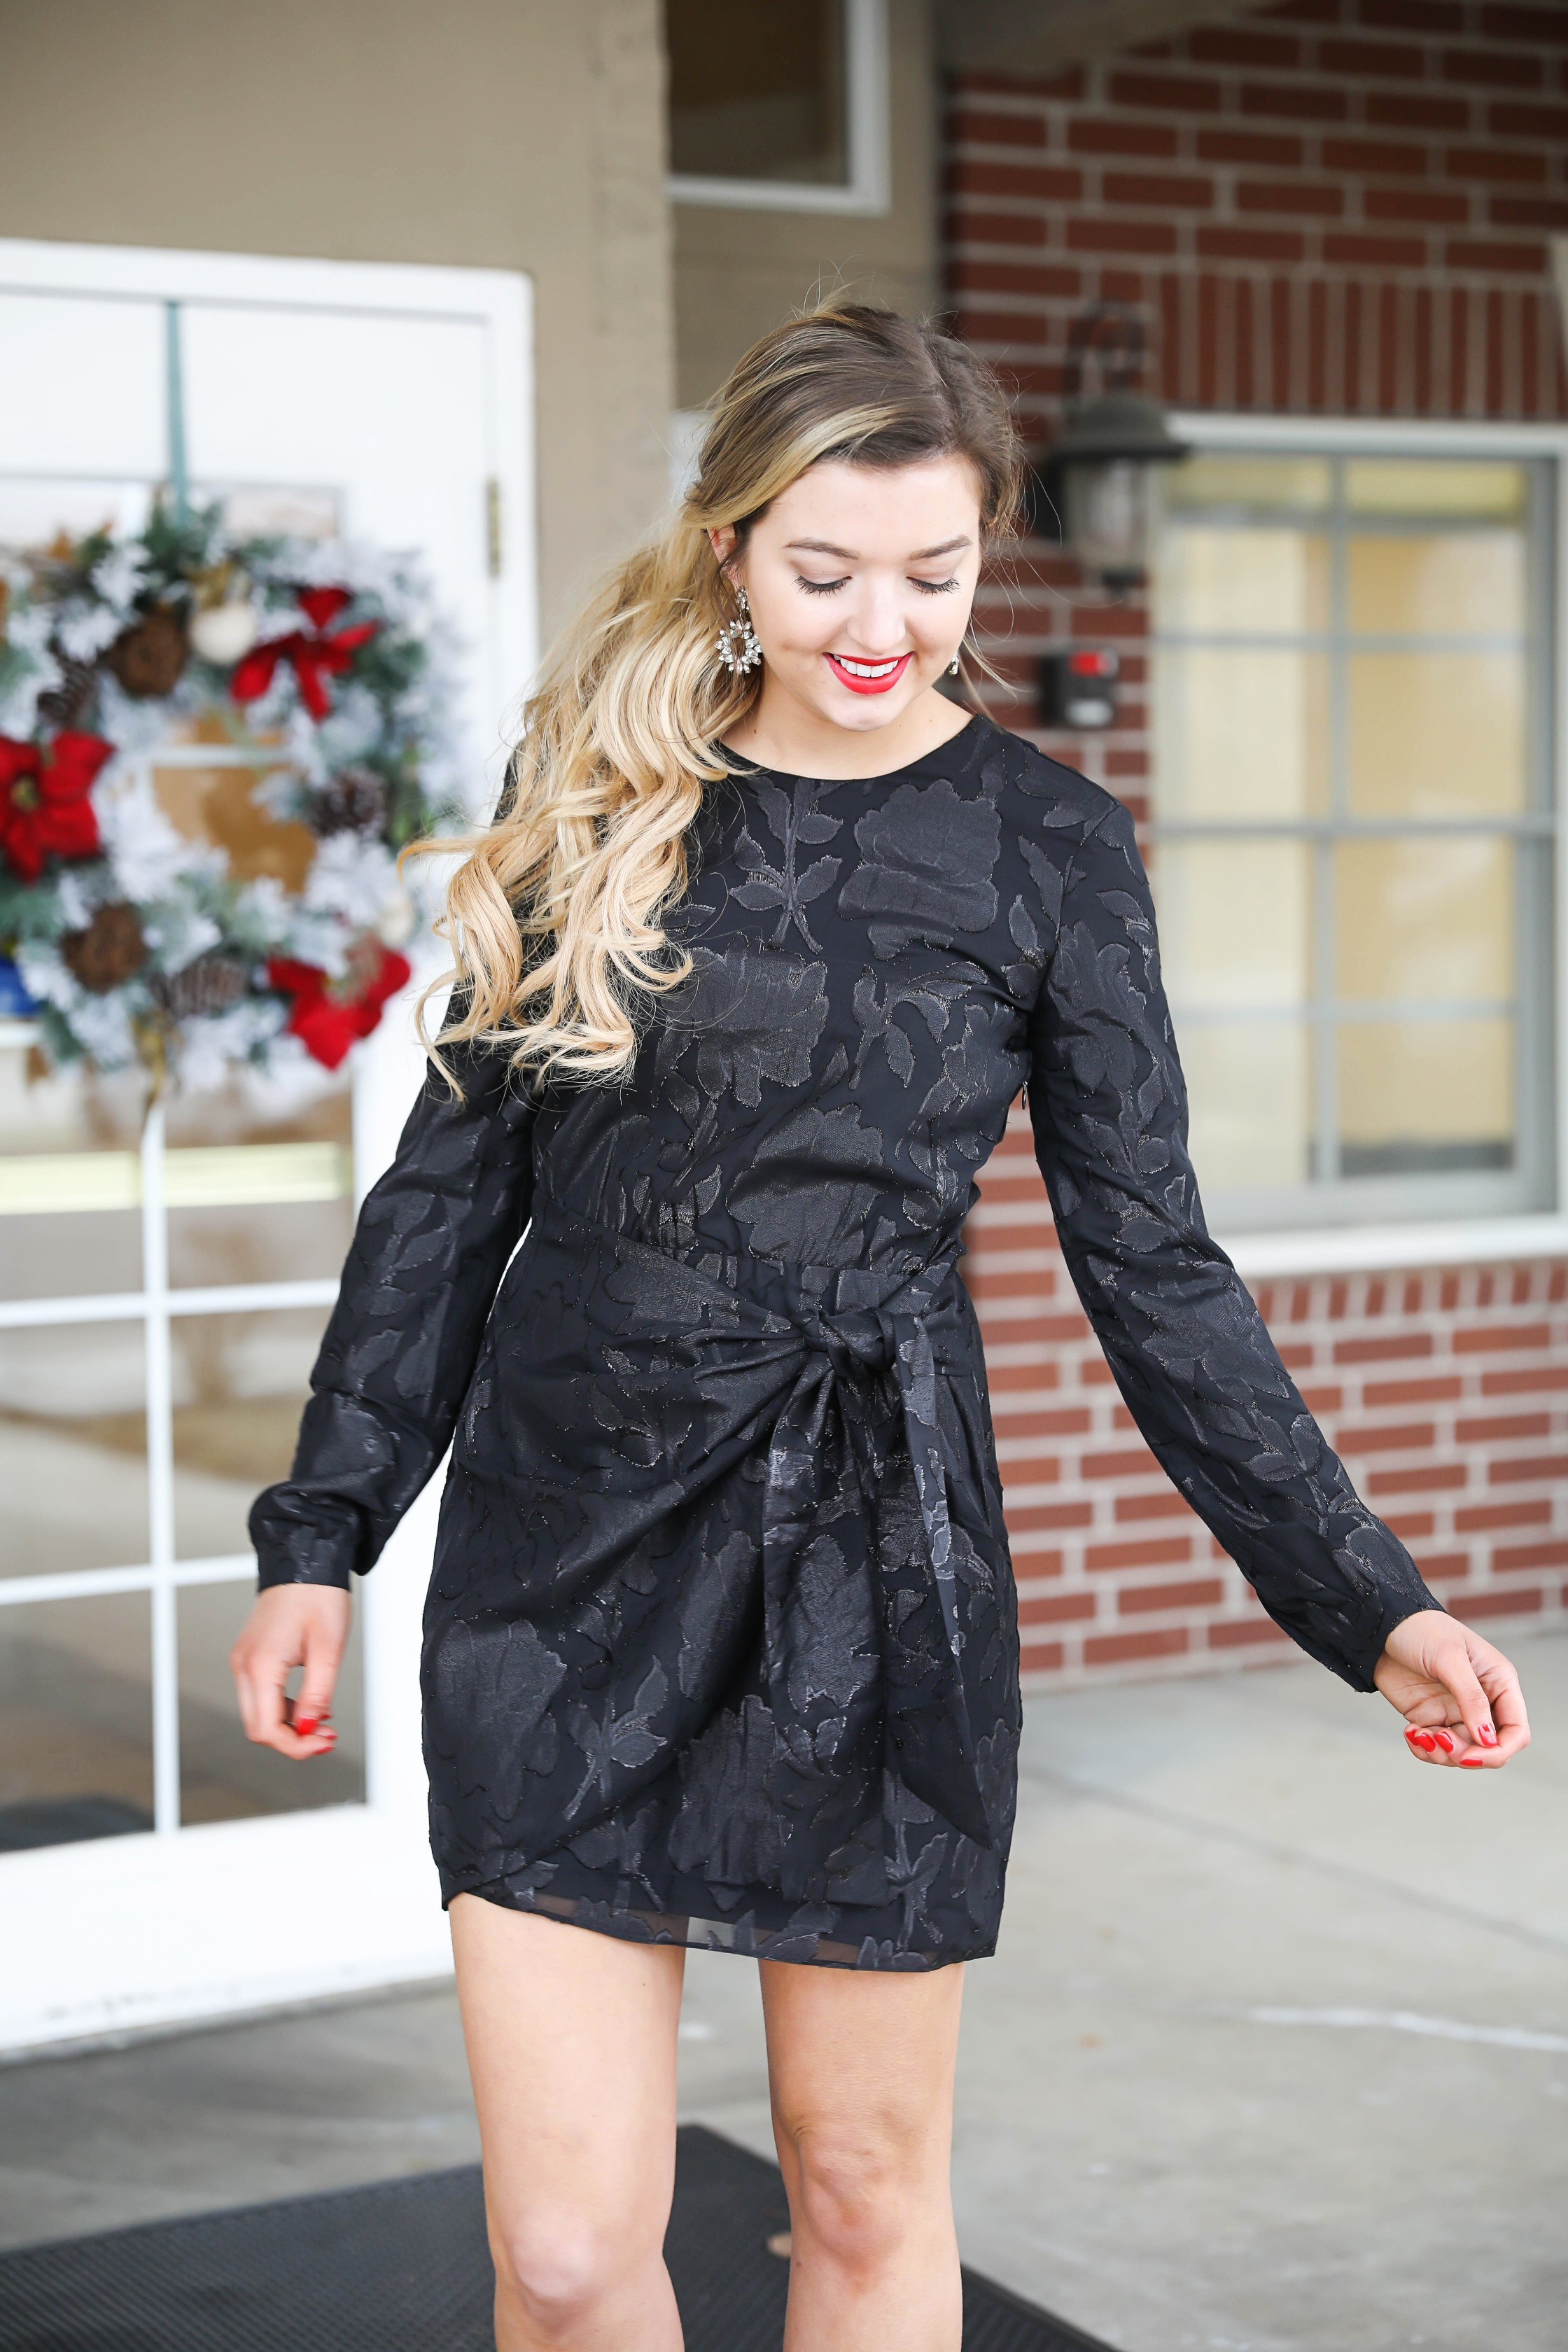 Black tied classy dress with cluster earrings by baublebar! Cute winter or holiday look, super cute holiday dress! Details on fashion blog daily dose of charm by lauren lindmark